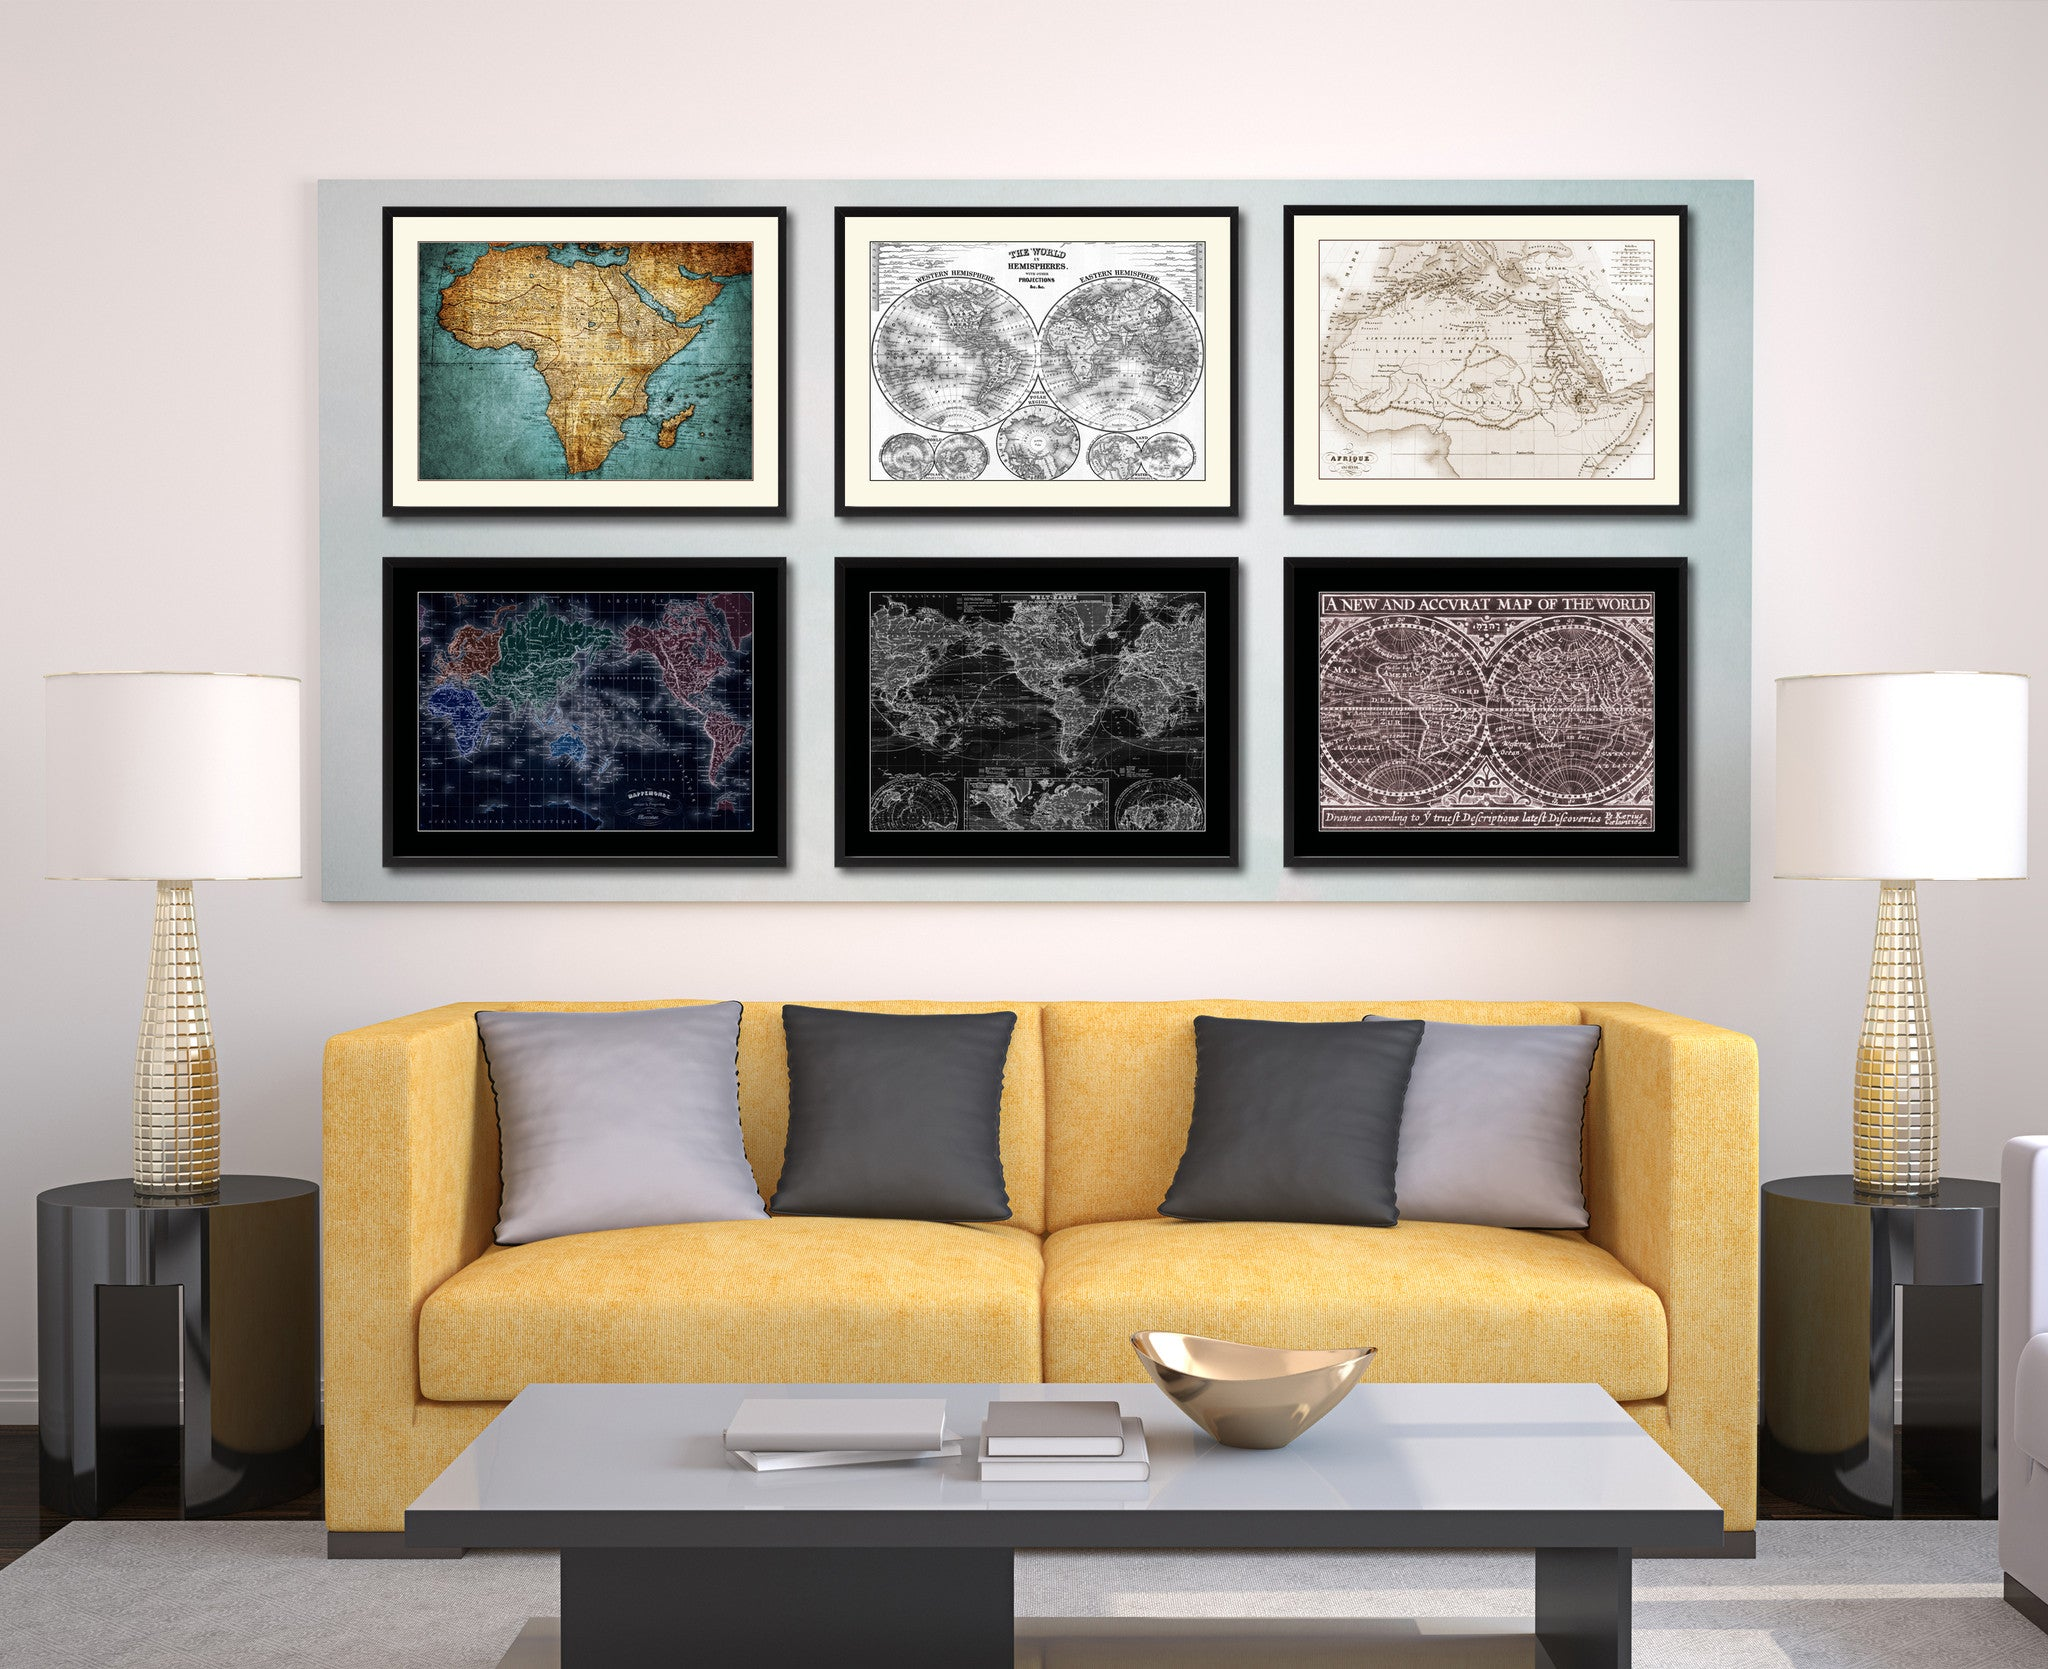 Ancient Africa Vintage Sepia Map Canvas Print, Picture Frame Gifts Home Decor Wall Art Decoration